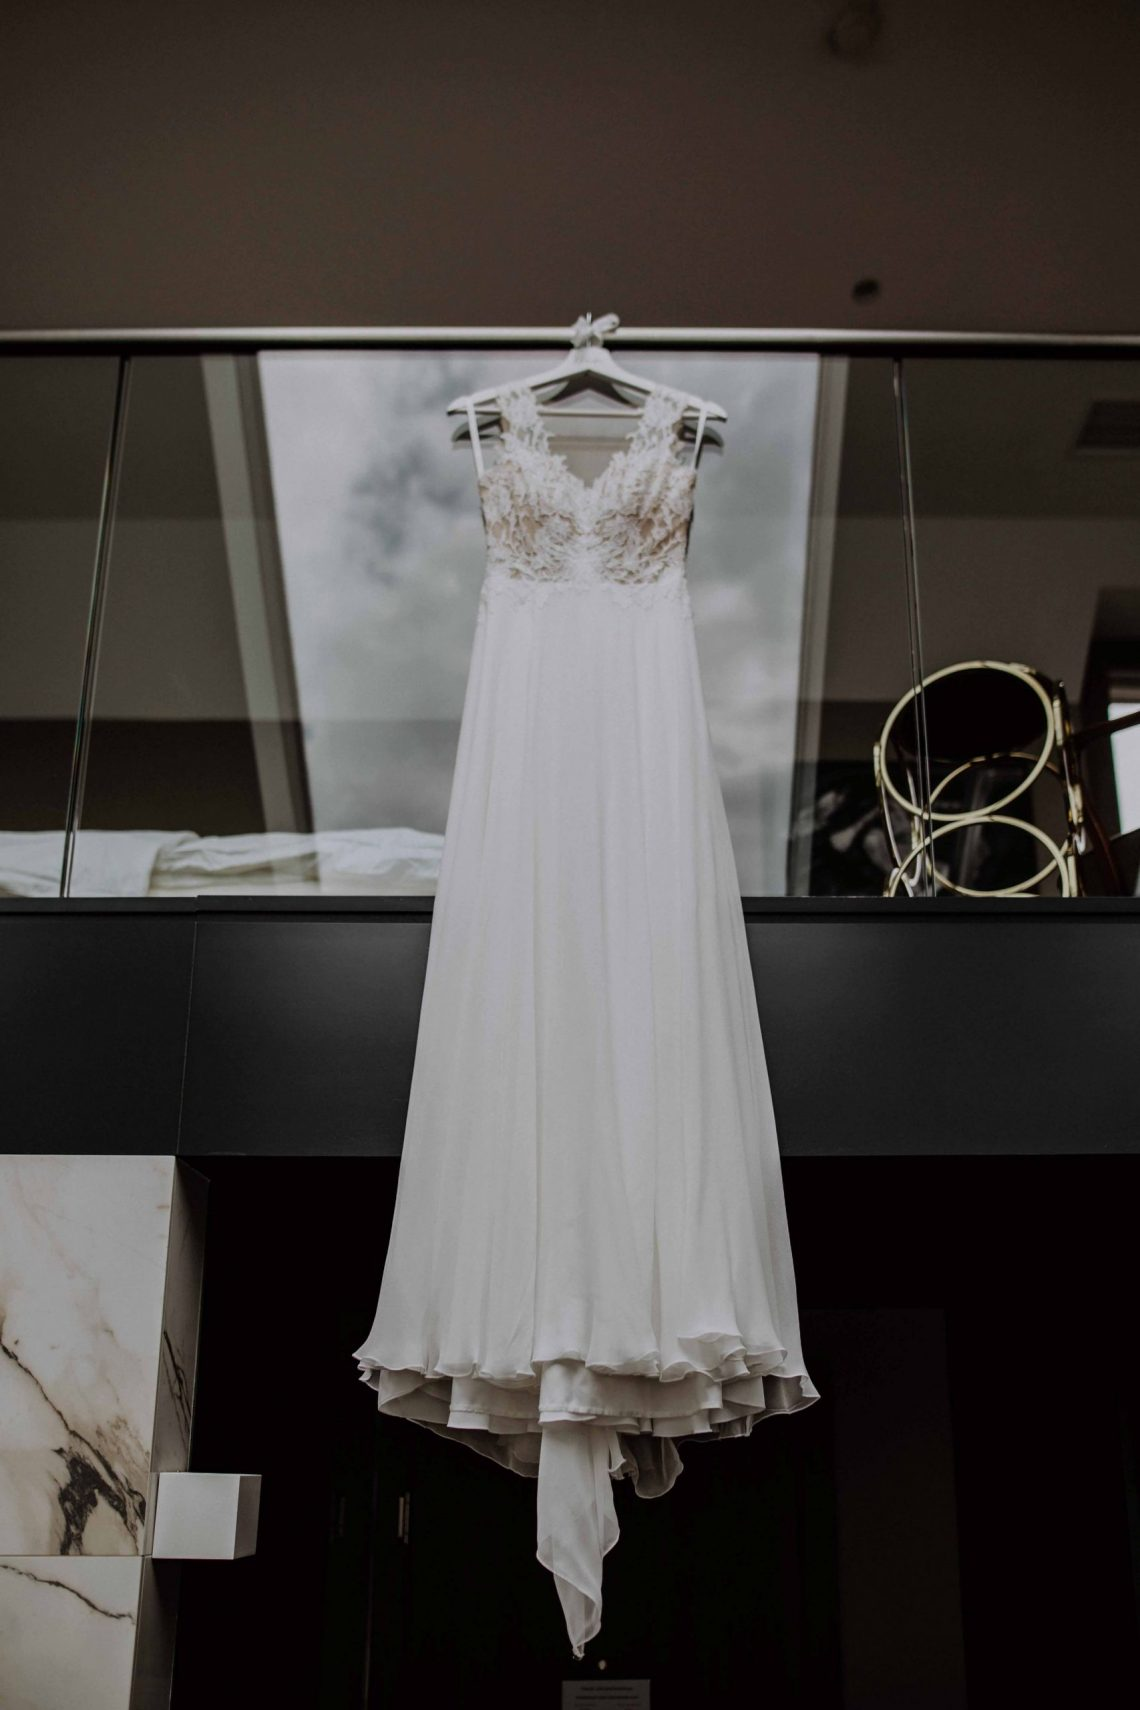 Wedding On A Budget: Bridal Dress For Less